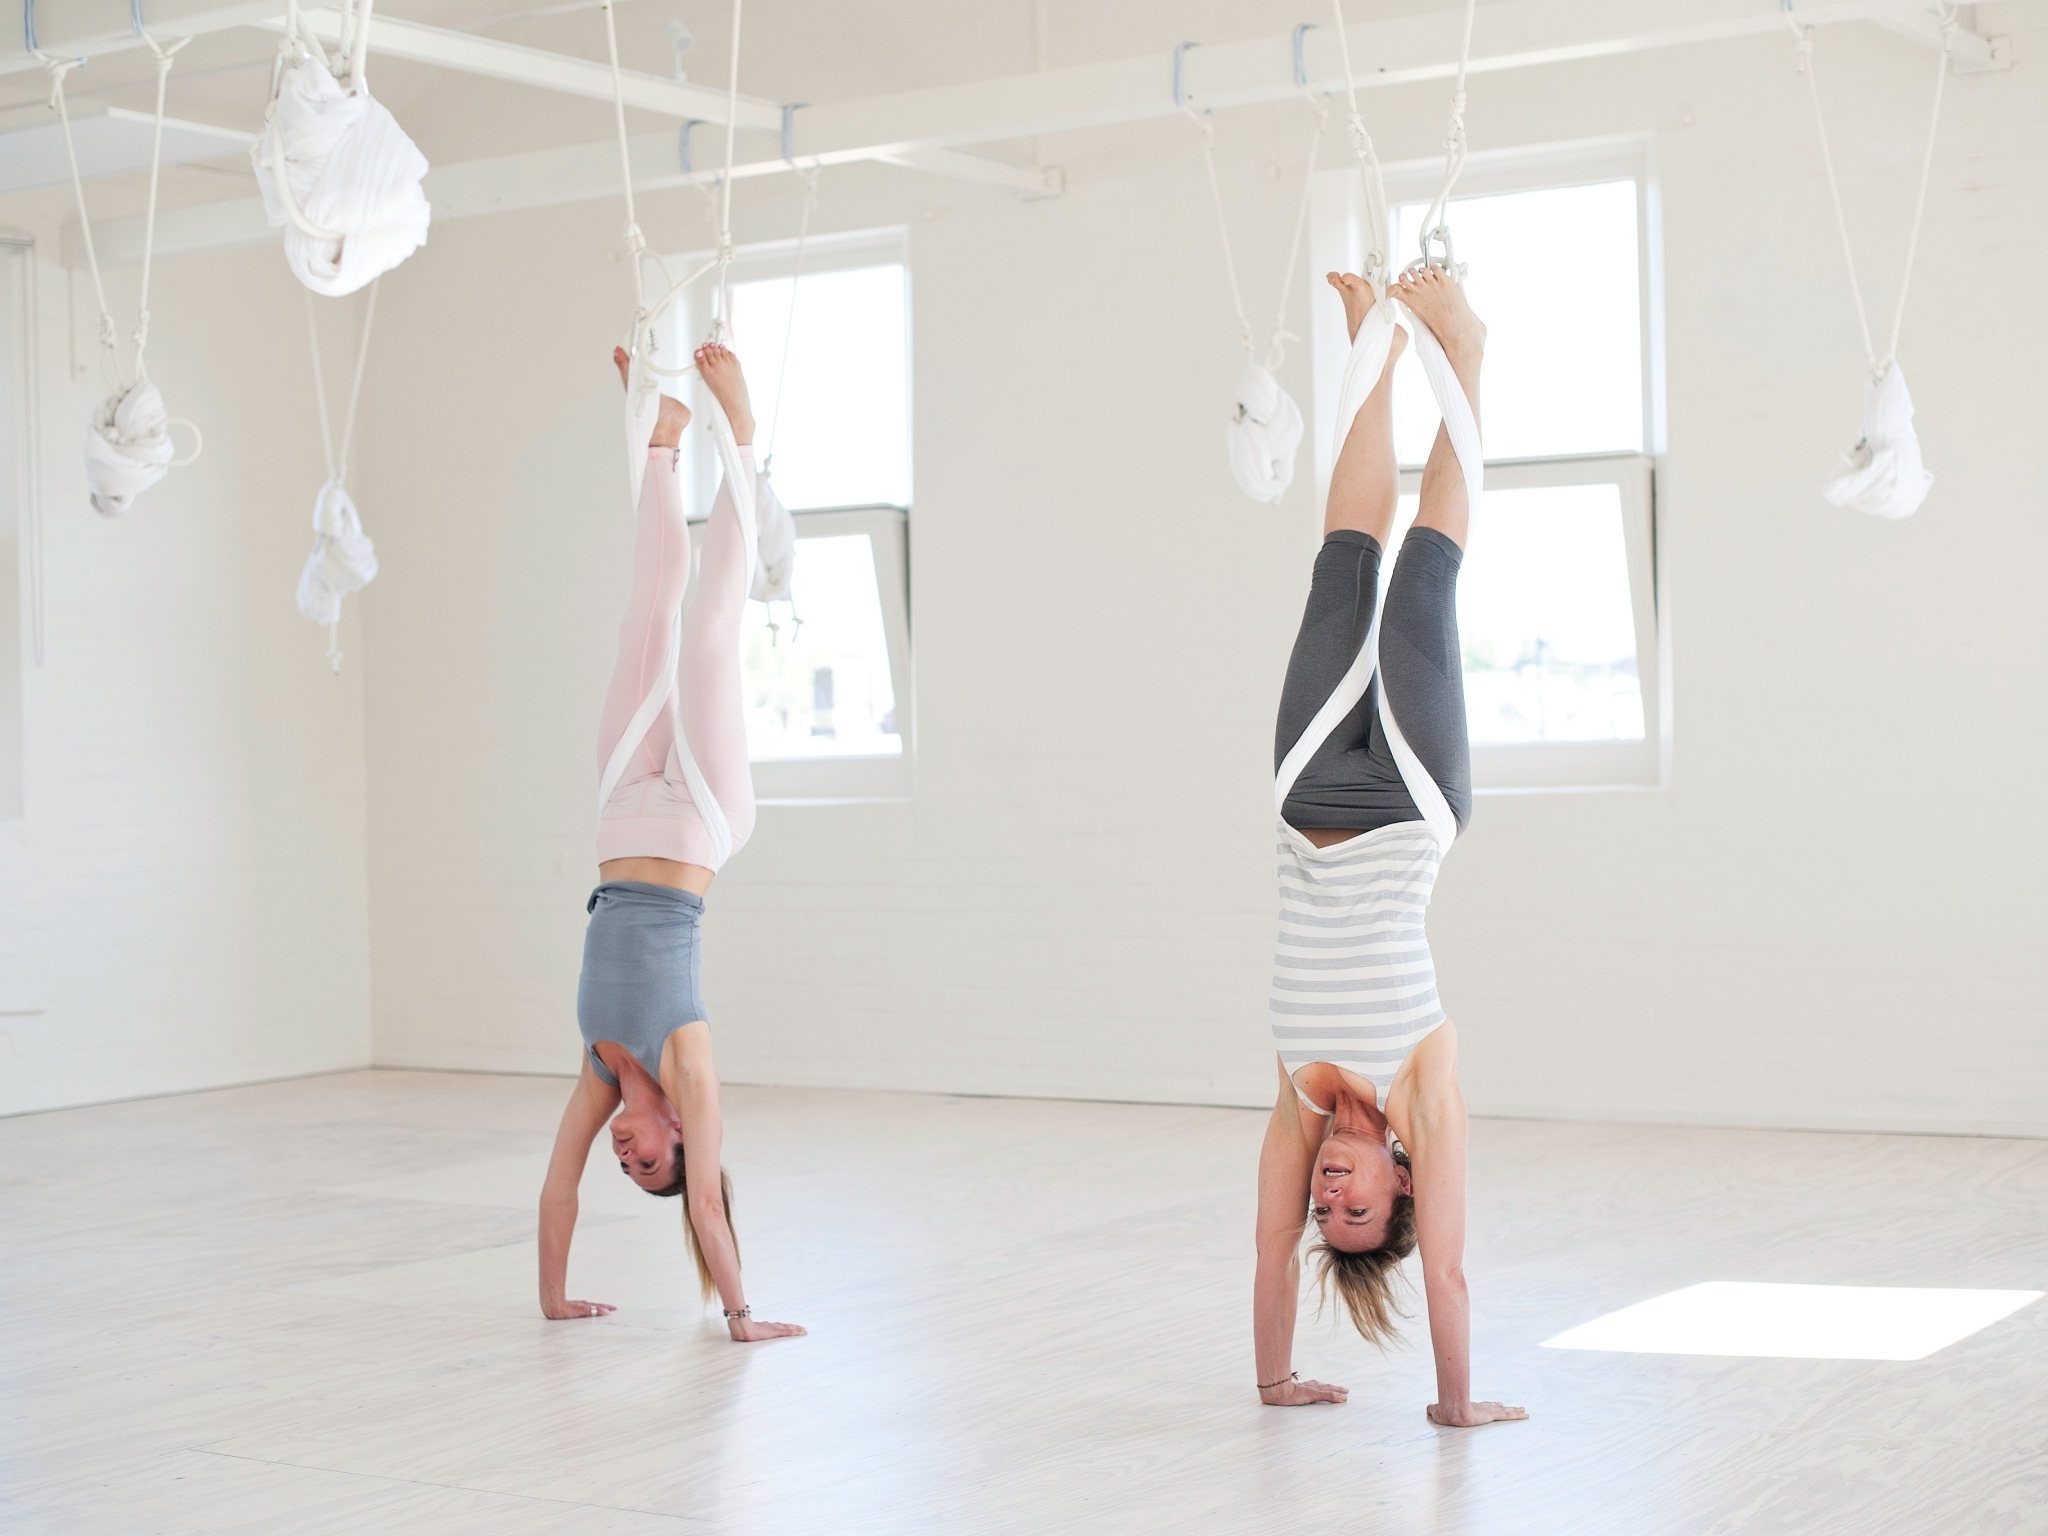 Two women practice aerial yoga at Bodyflow Yoga in Windsor